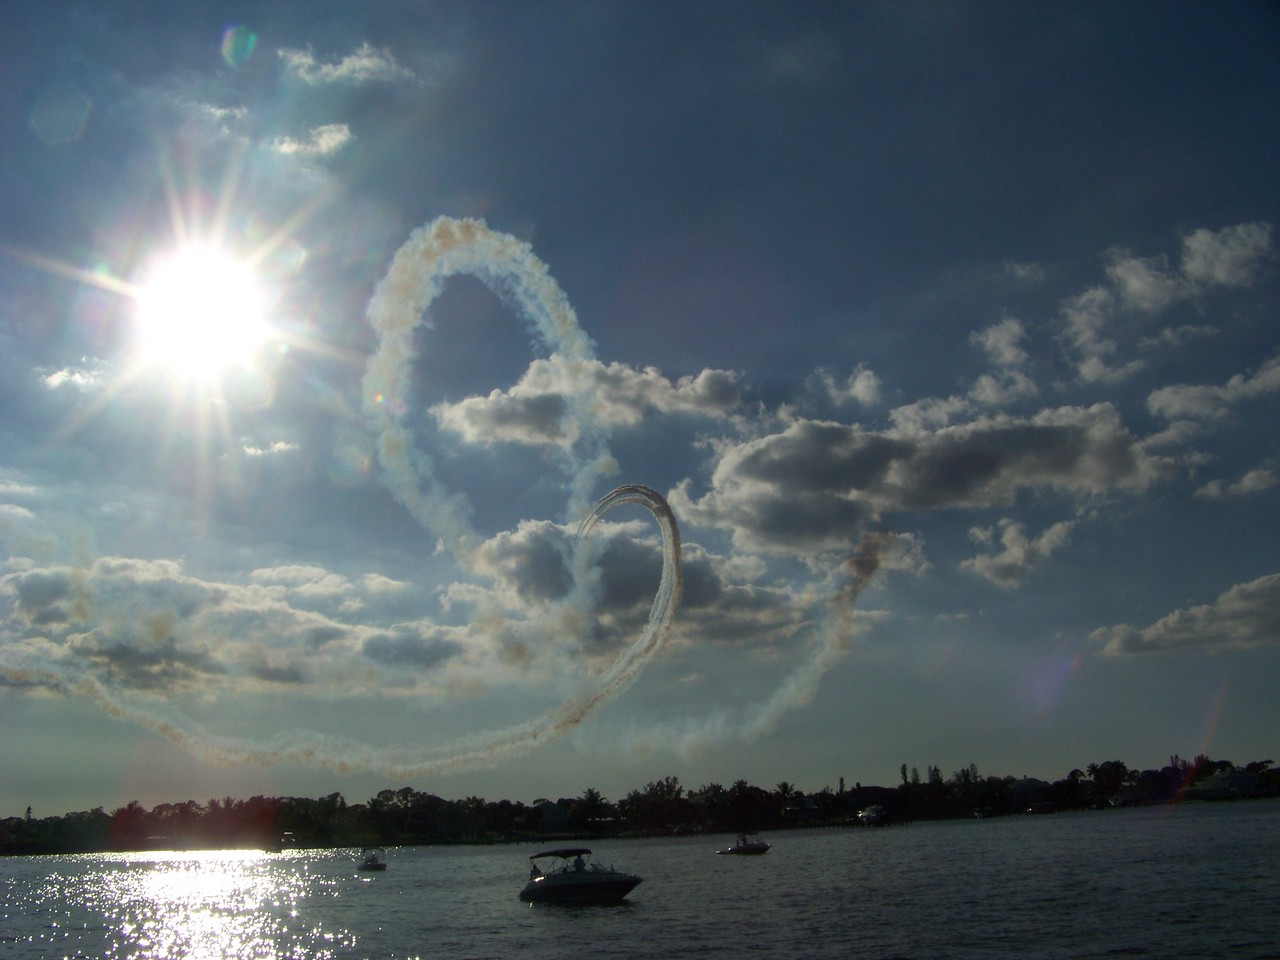 Squadron boats enjoy the air show in Port Saint Lucie, Fla.